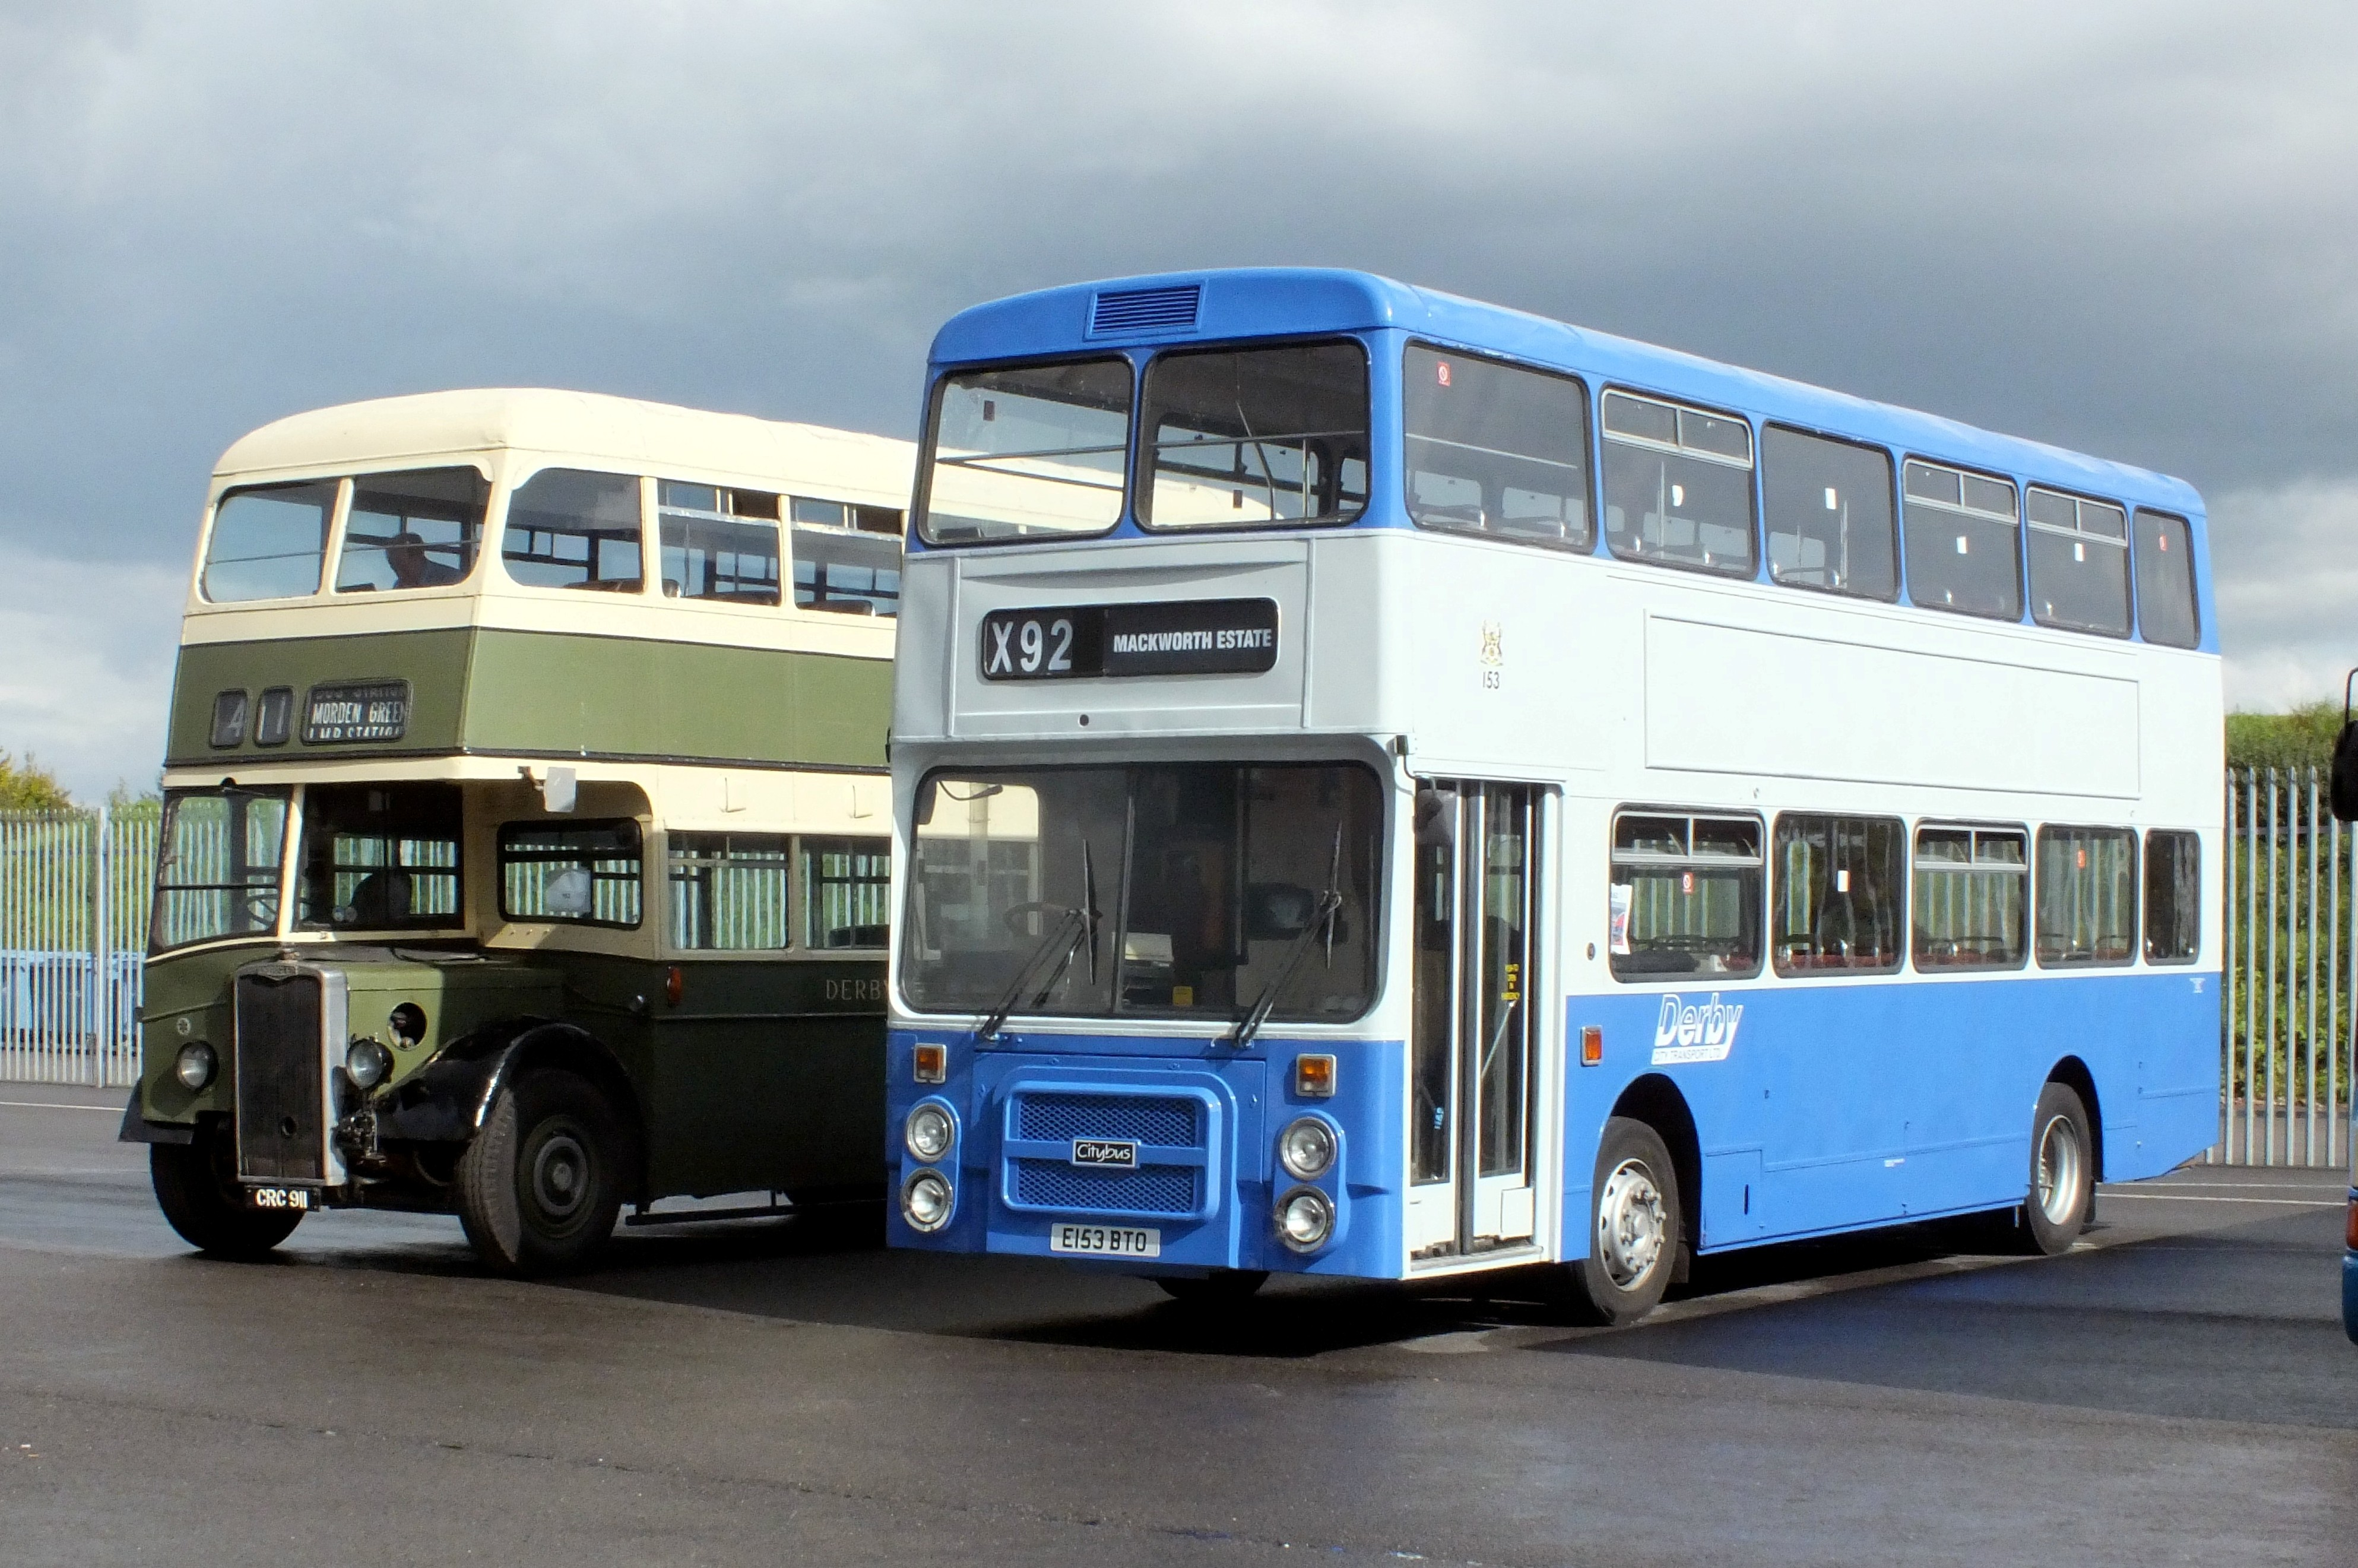 17 September 2017 Showbus, Donington. 408.jpg